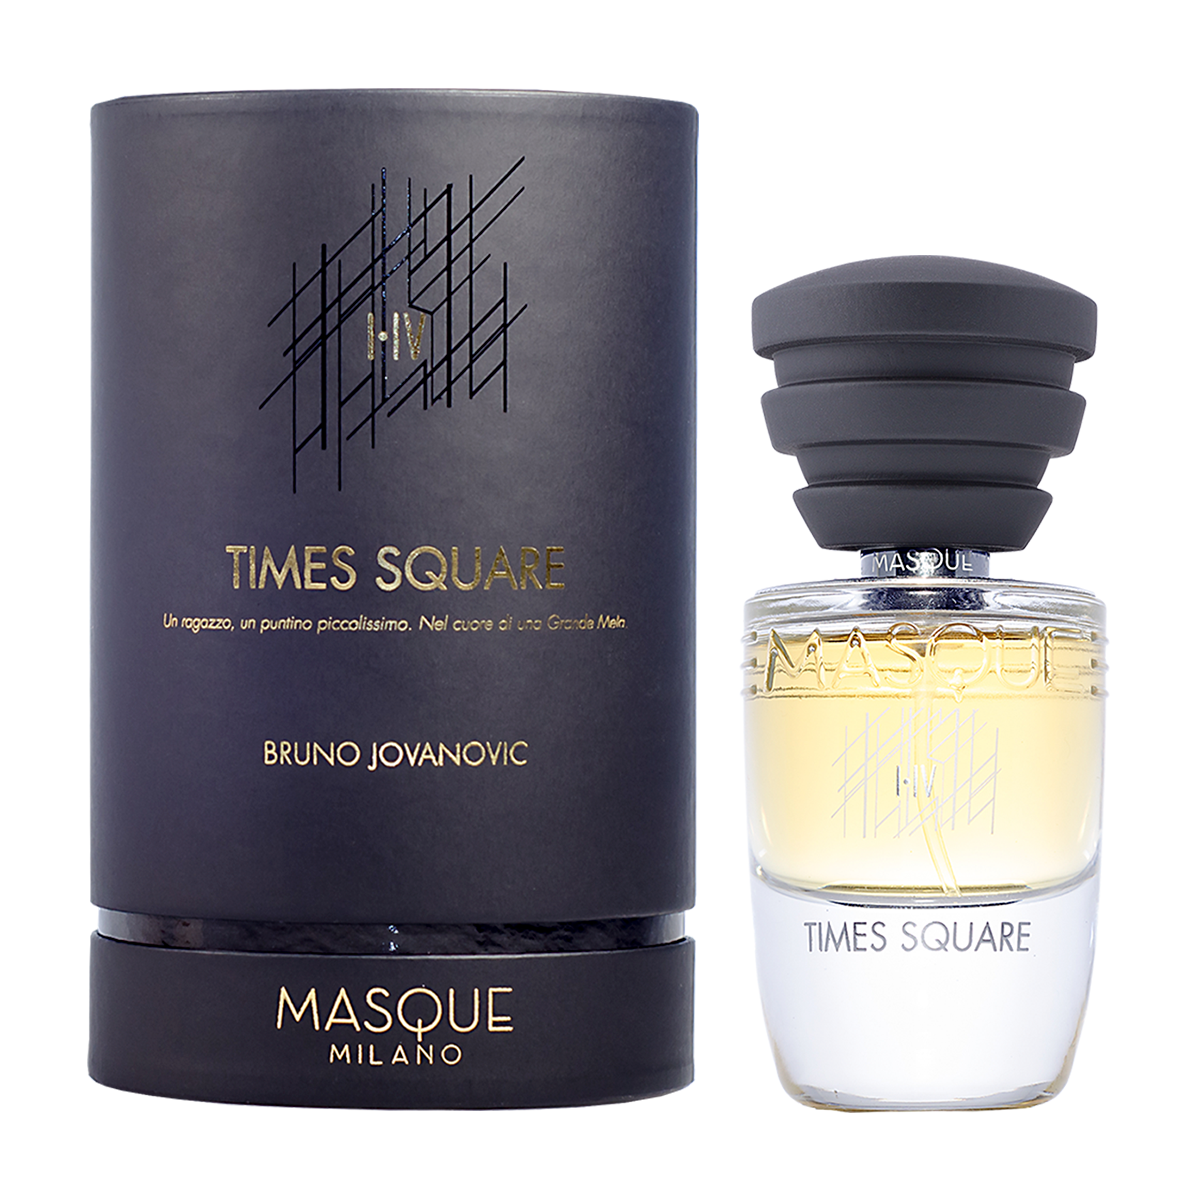 Times Square - Masque Milano EDP 35ml